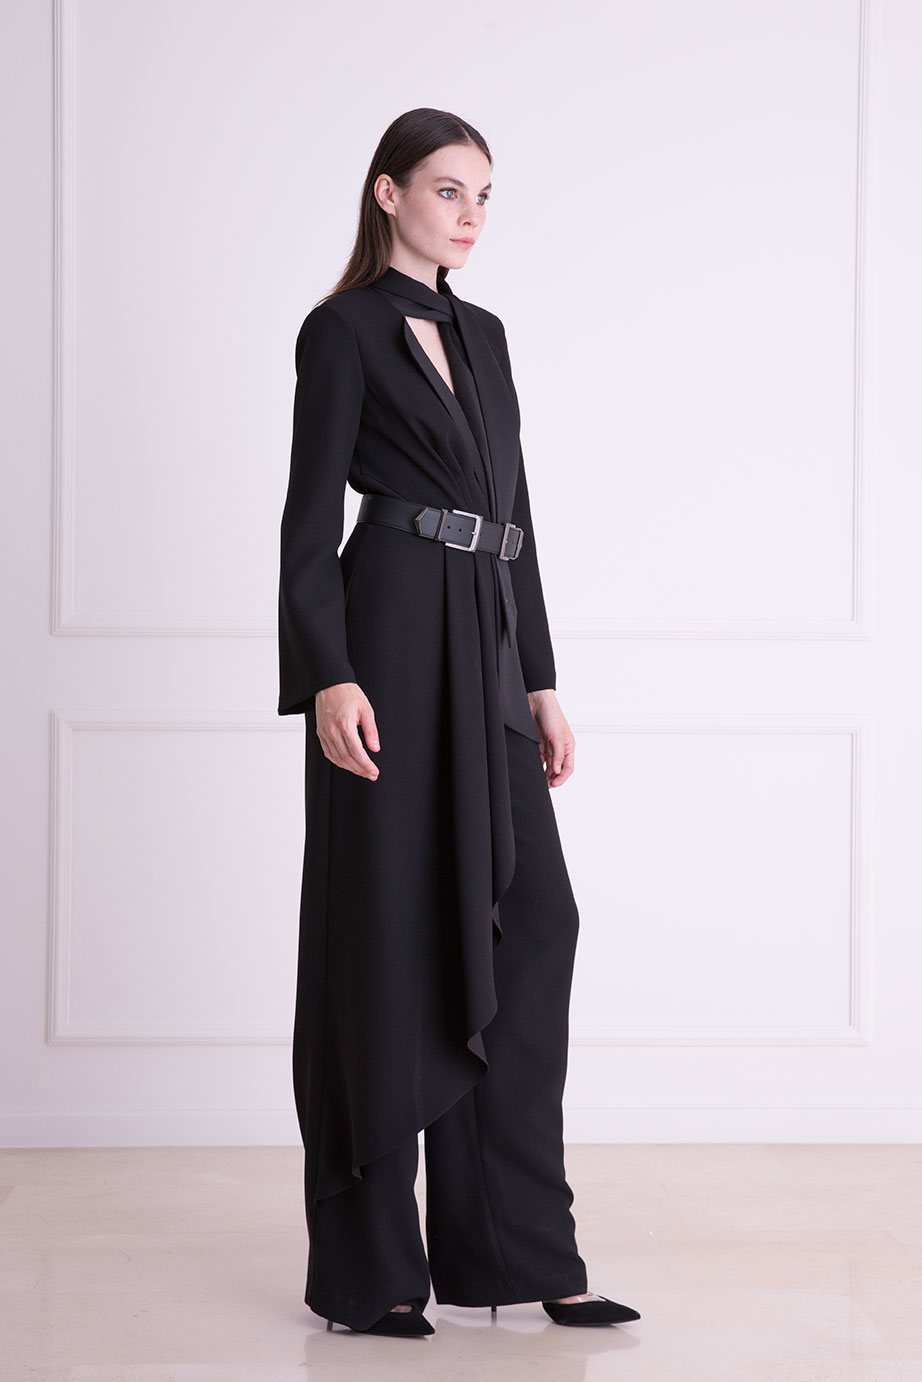 Black Overall with Belt